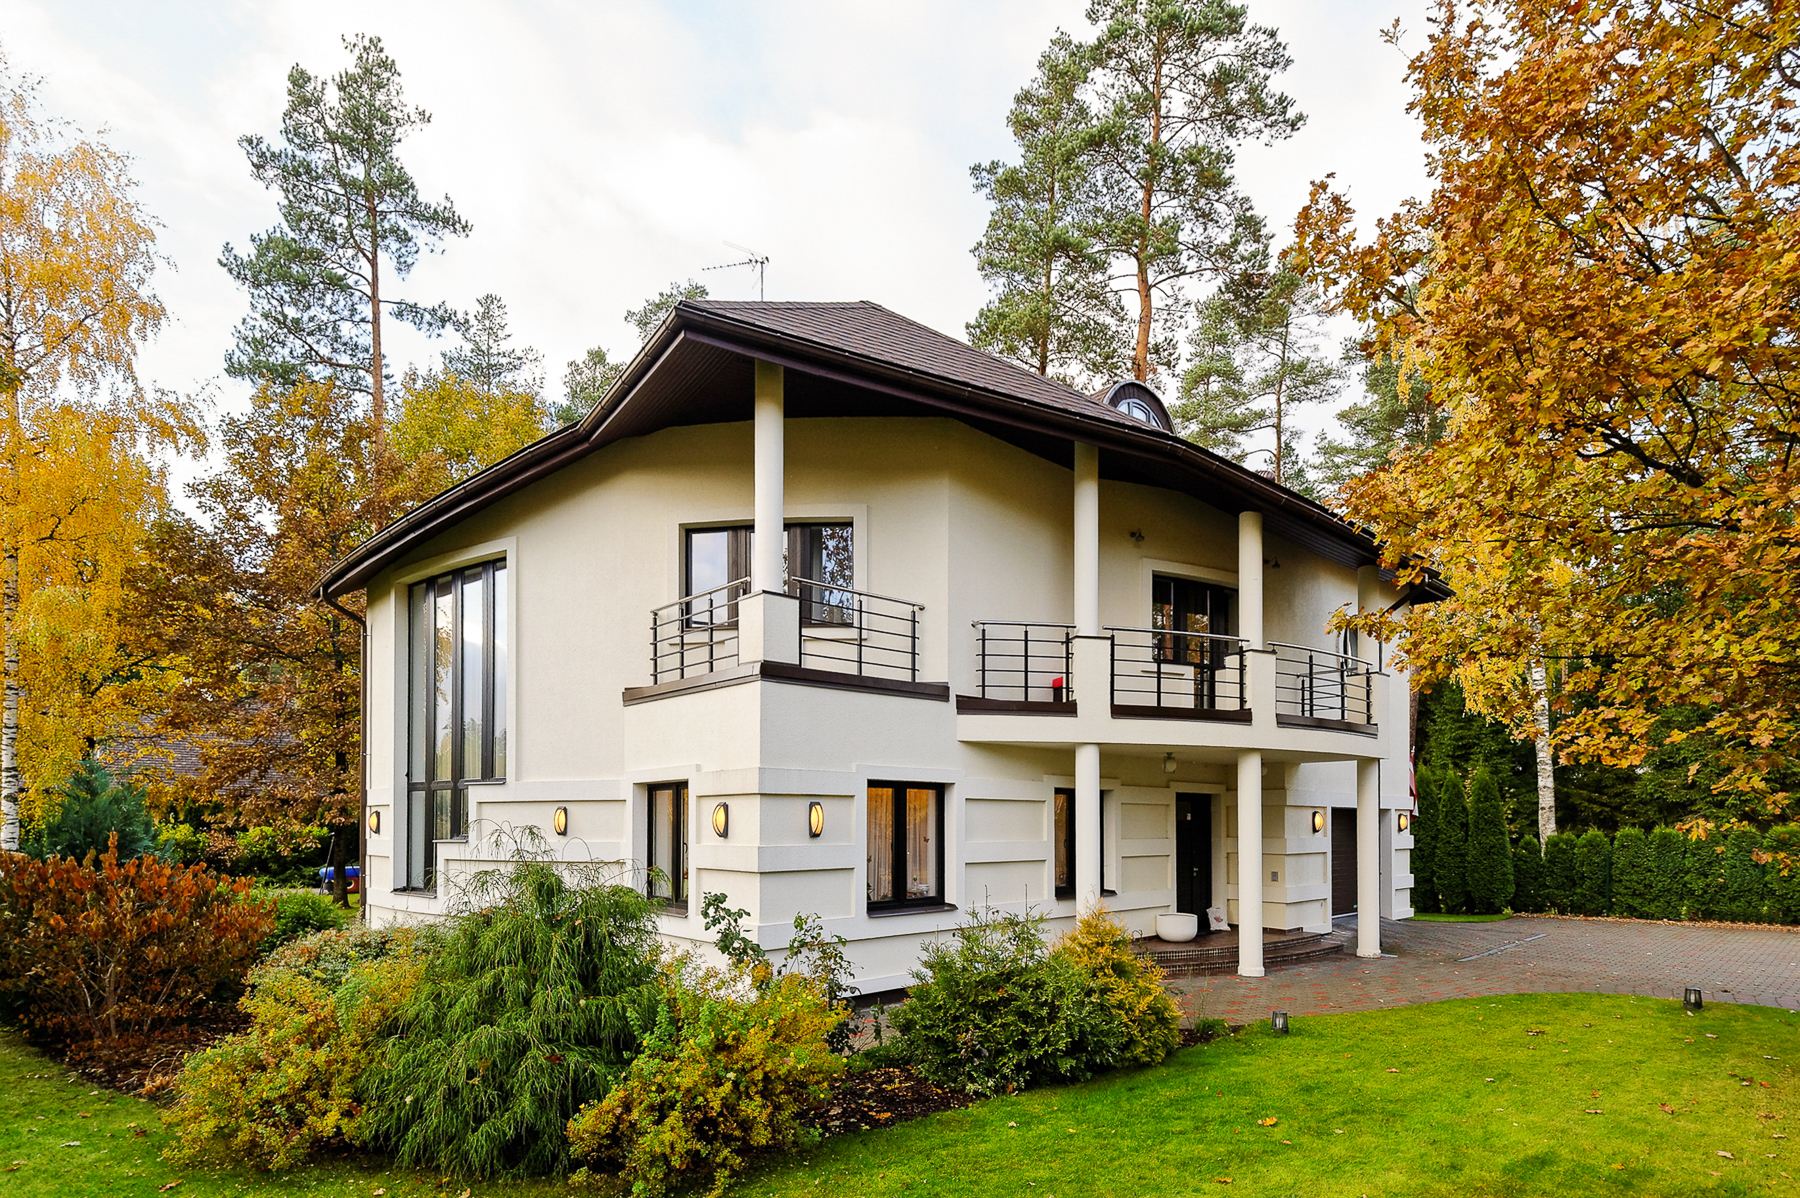 Property For Sale at Modern private house in a guarded village Sunisii in Latvia